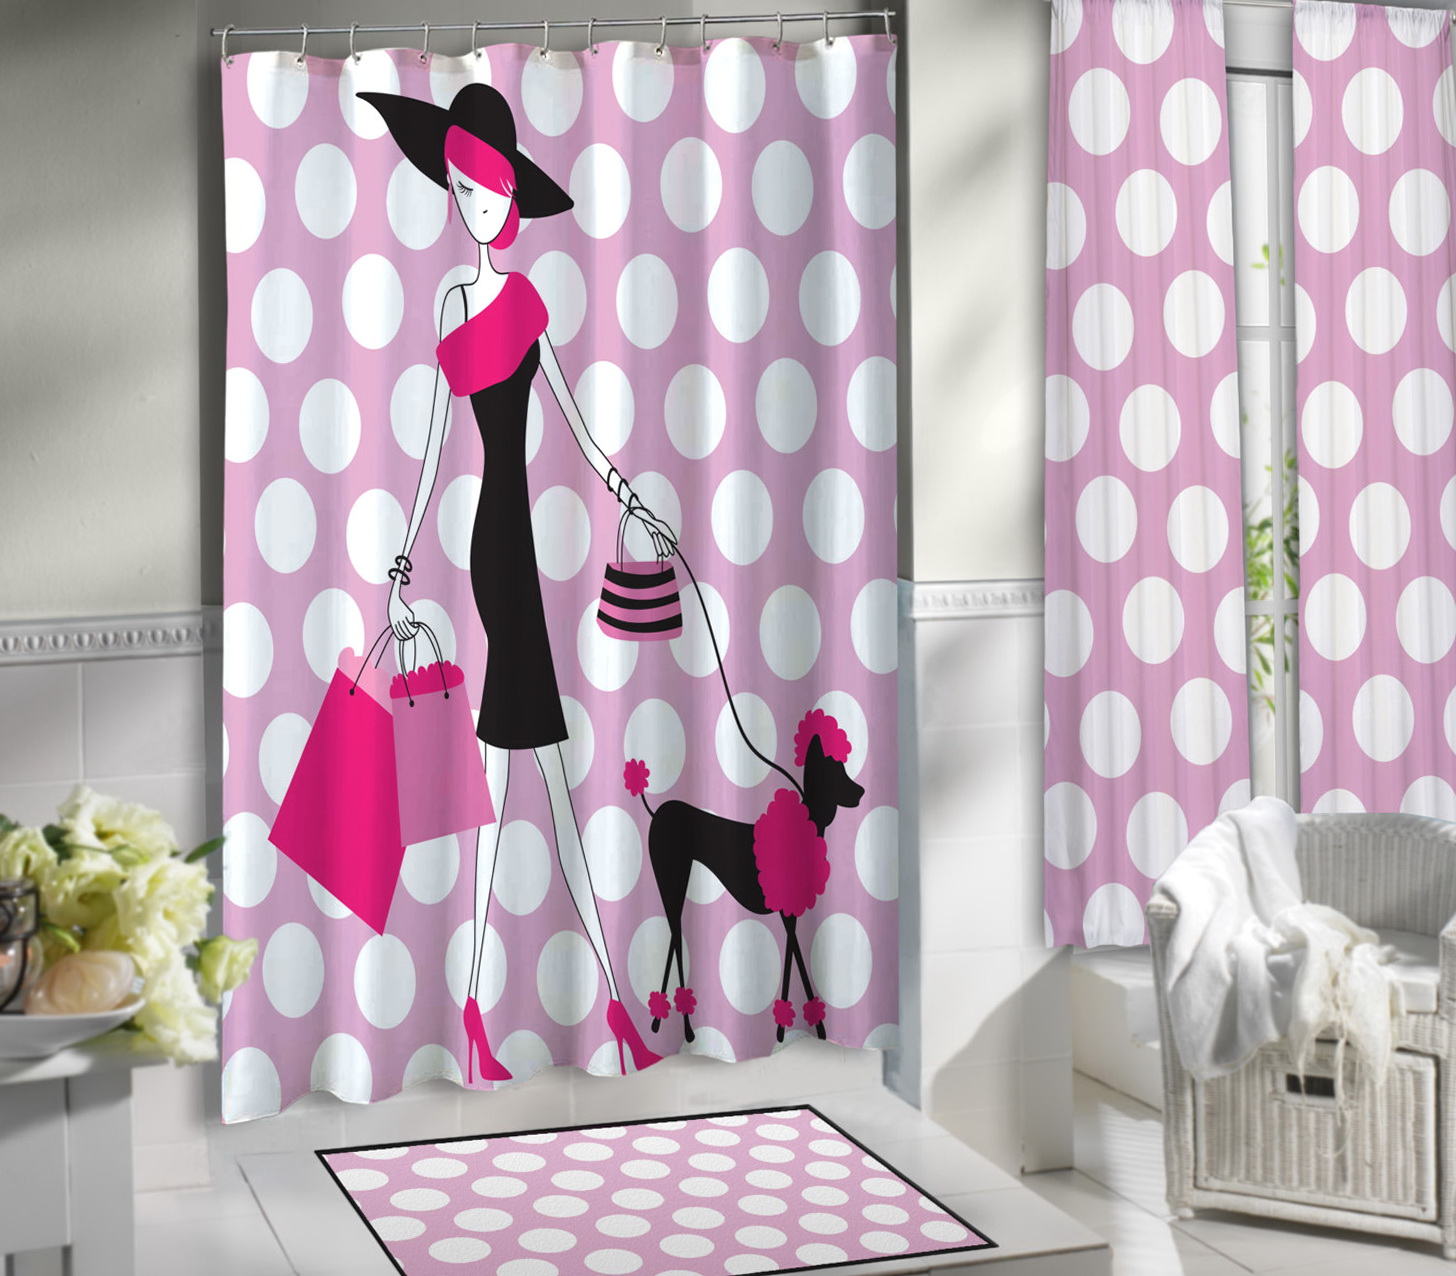 Pink Polka Dot Curtains Asda Www Myfamilyliving Com